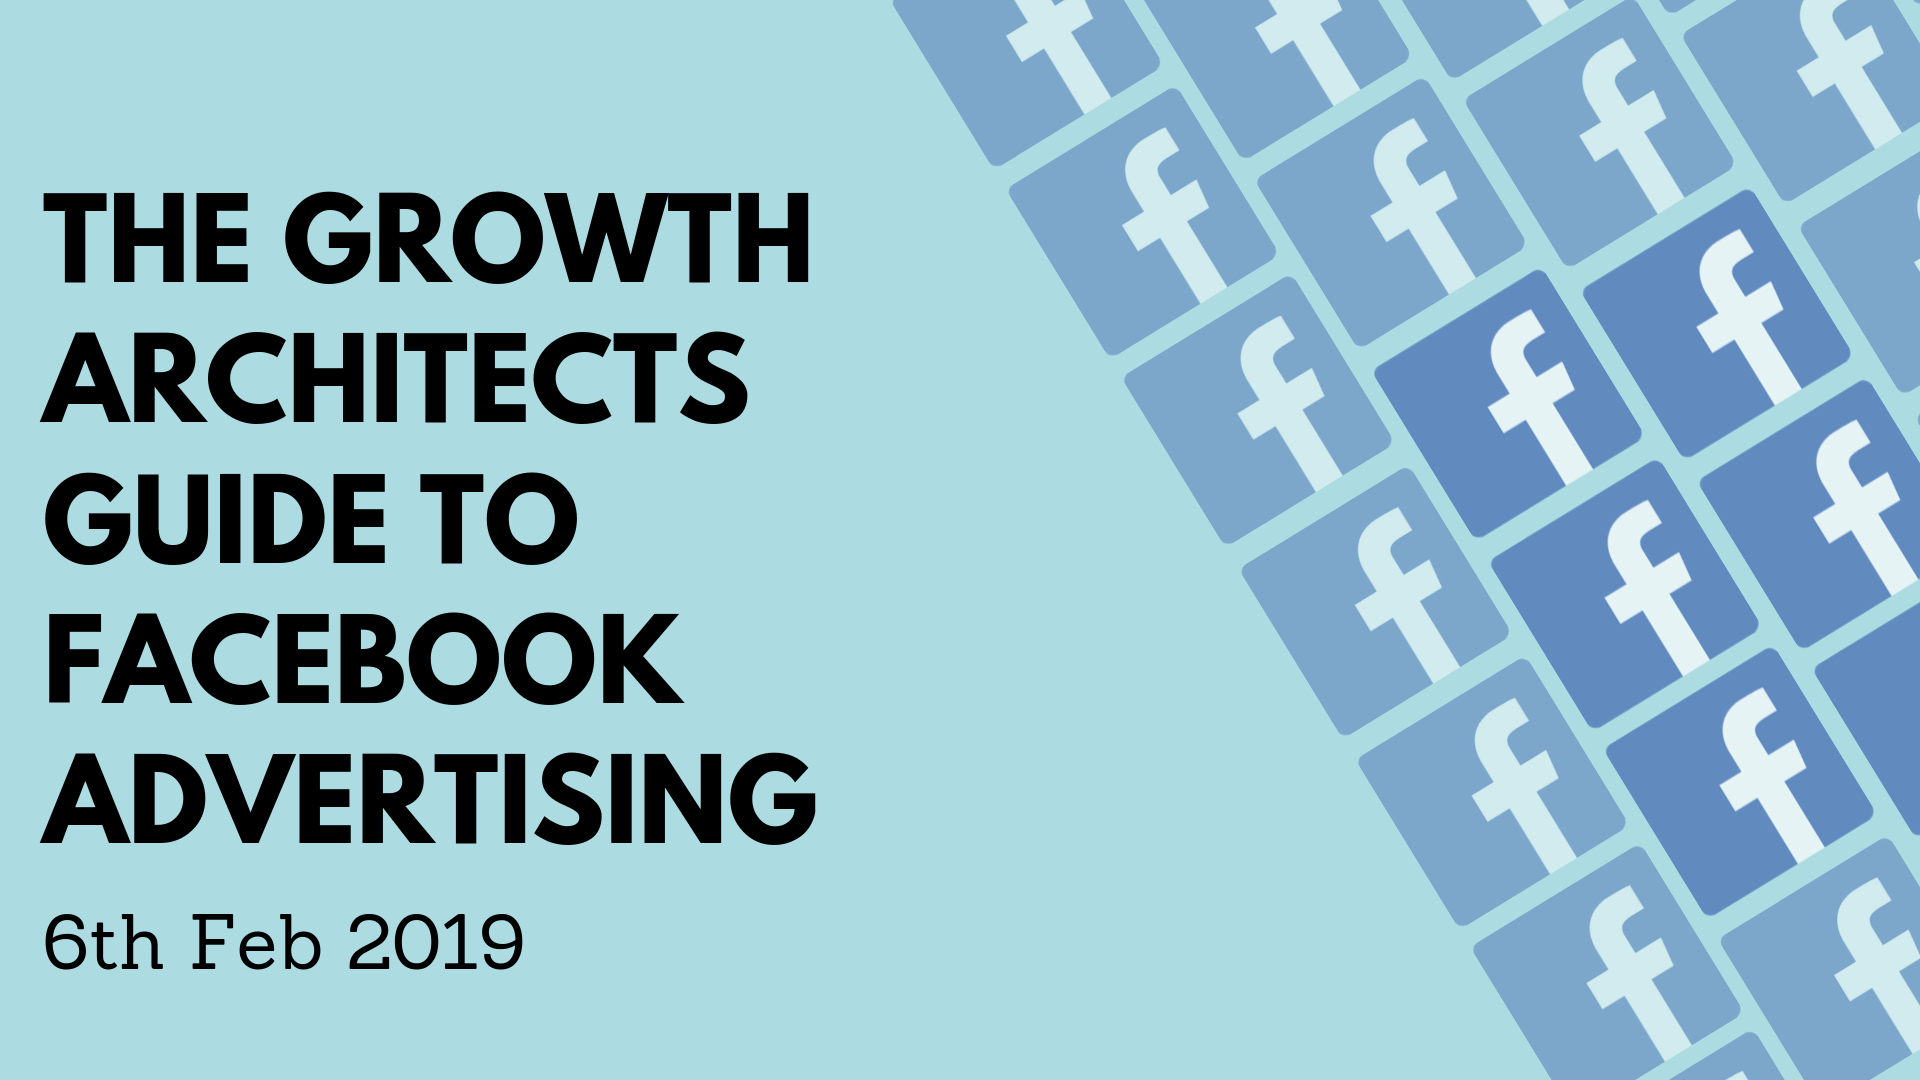 Growth Architects Guide to Facebook Advertising